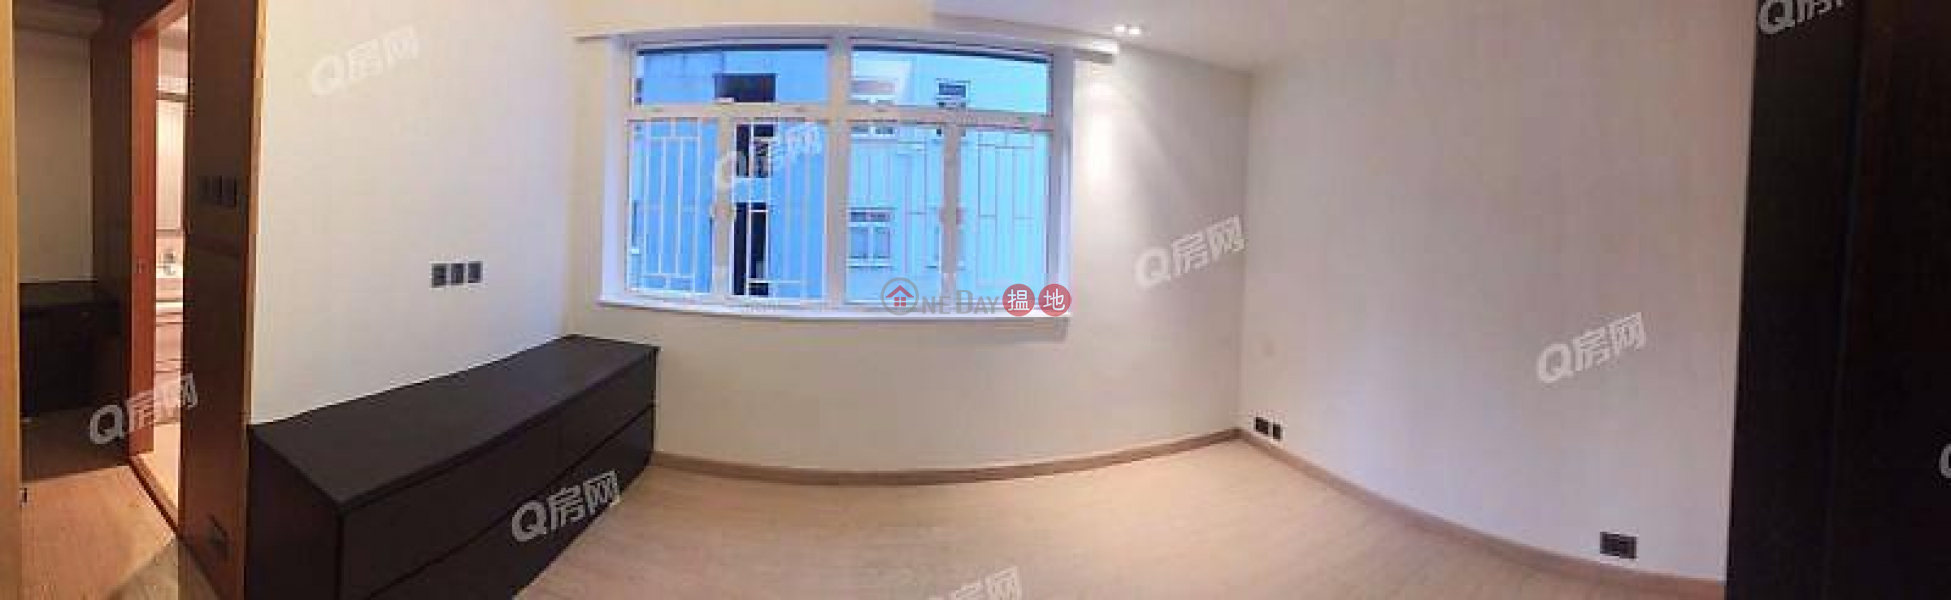 Winfield Gardens | 4 bedroom Mid Floor Flat for Sale | 34-40 Shan Kwong Road | Wan Chai District, Hong Kong | Sales, HK$ 23.8M